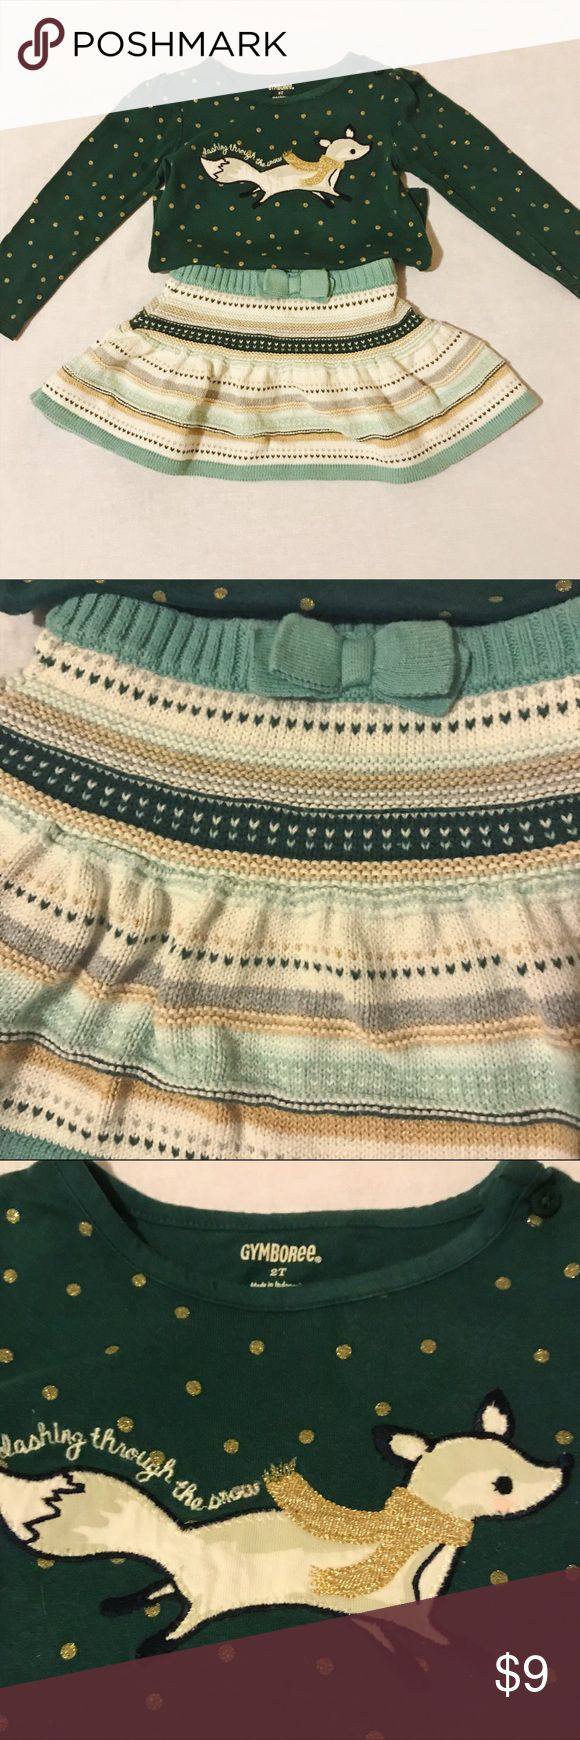 "Gymboree sweater skirt and top. Cute winter outfit in great condition. Forest green, gold and cream sweater skirt- heavy knit. Polka dot green and gold long sleeved top reads ""dashing through the snow"" above the fox. 2 available. Gymboree Matching Sets"